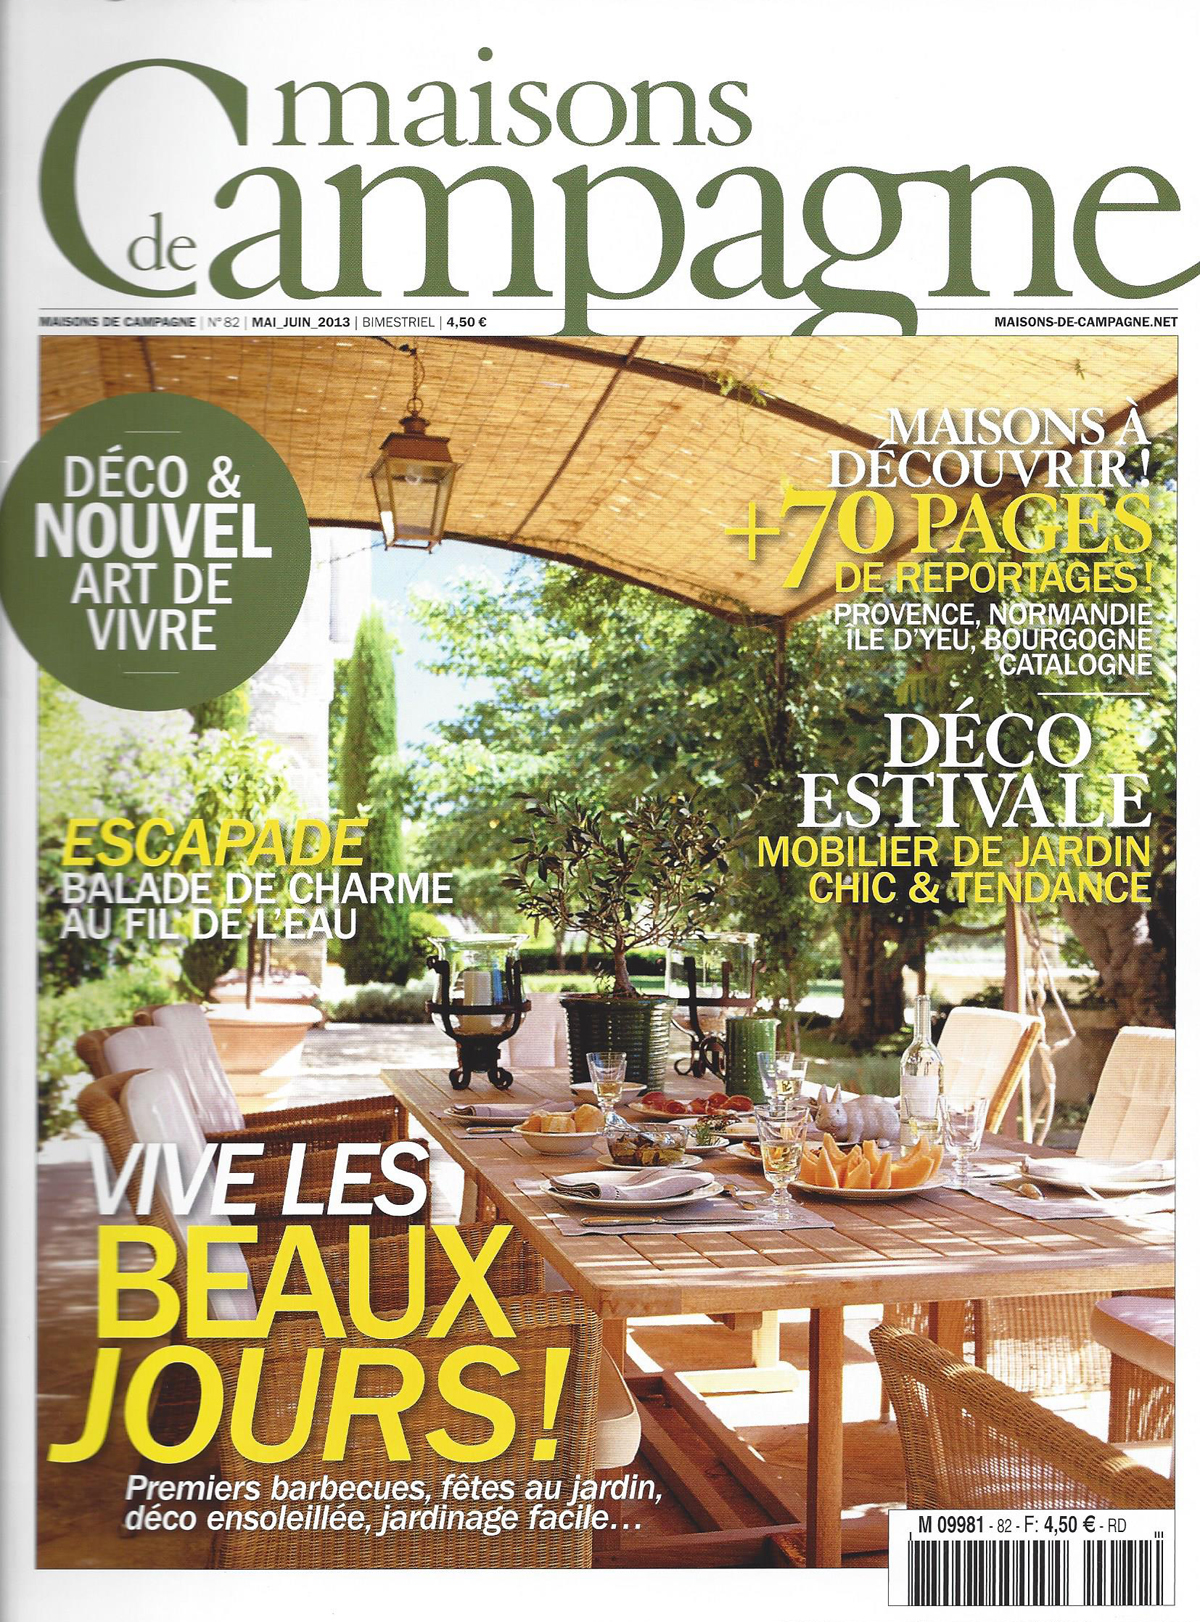 Maison de campagne magazine great maison revue campagne n for Le journal de la maison abonnement